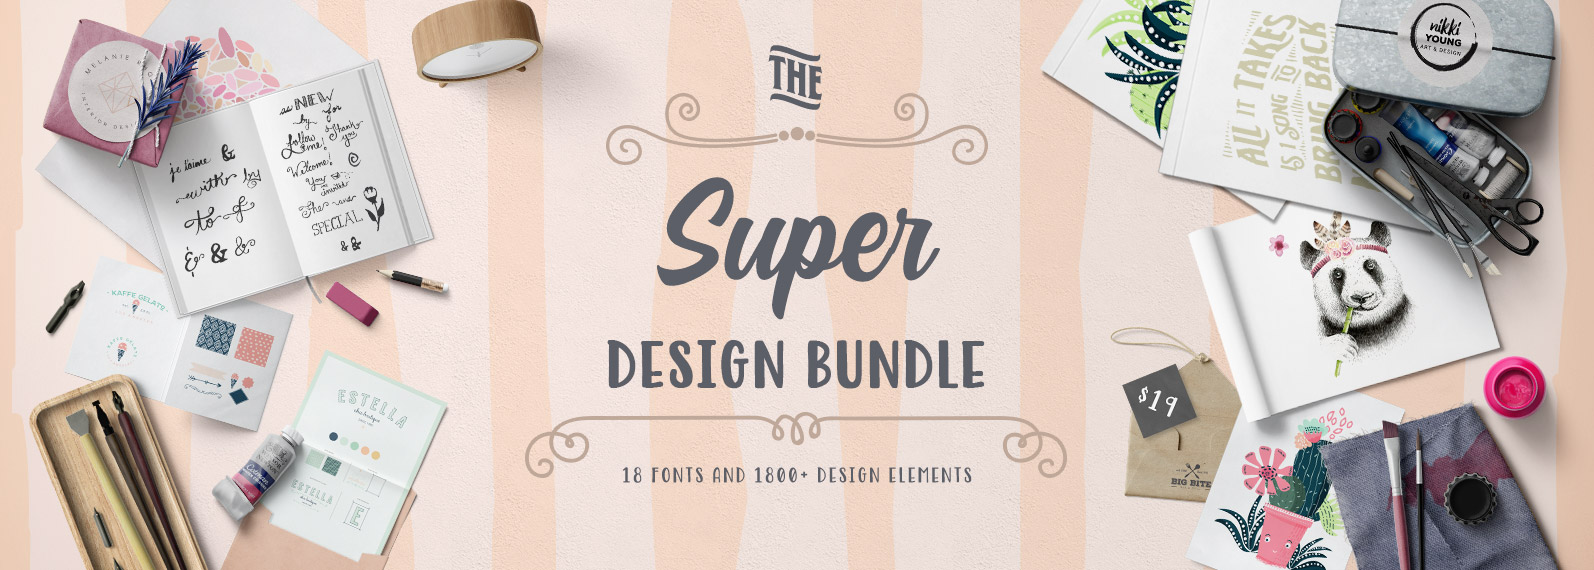 The Super Design Bundle Cover